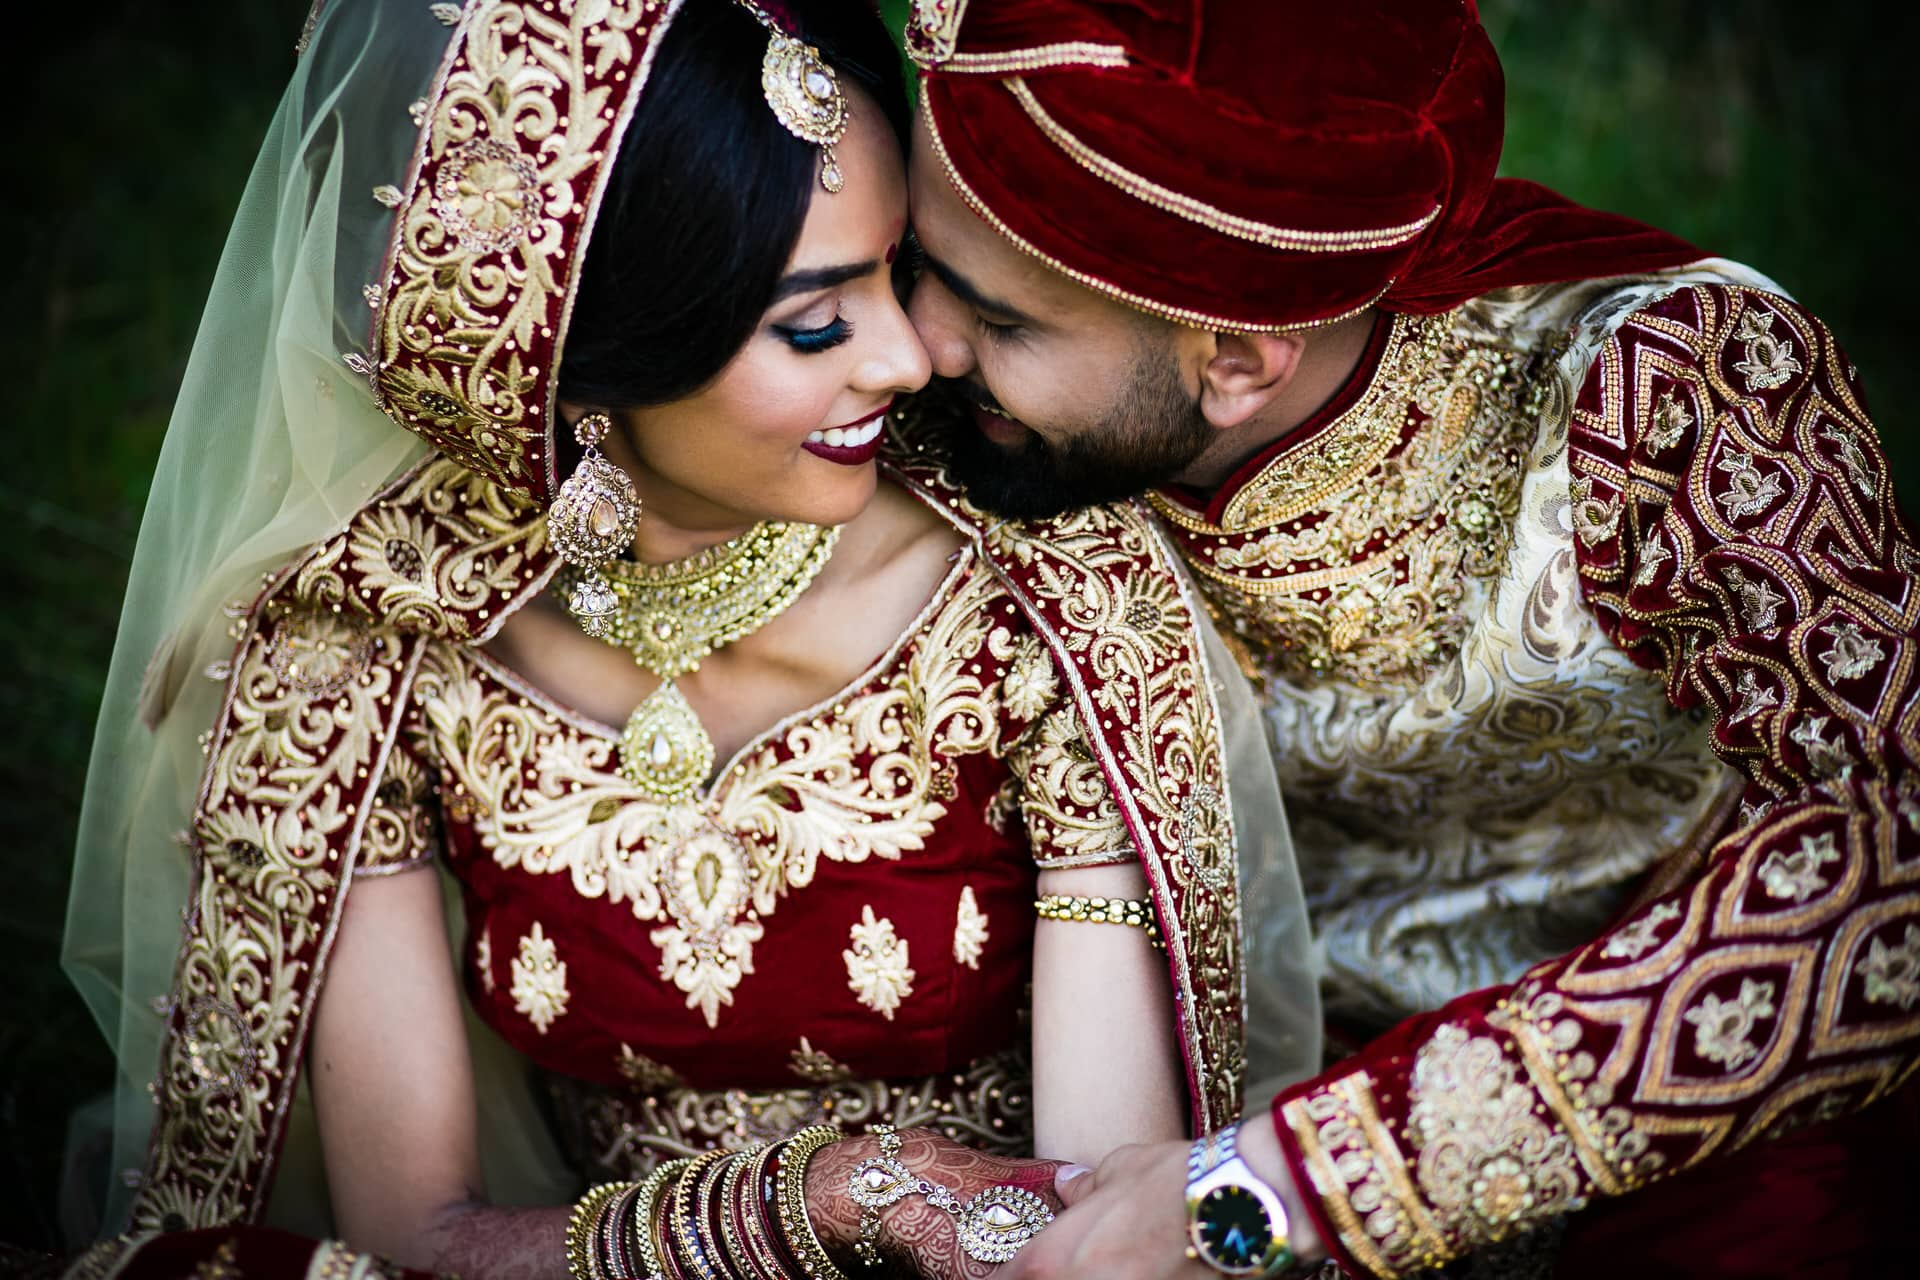 Asian Wedding portrait at Copthorne Effingham Parl